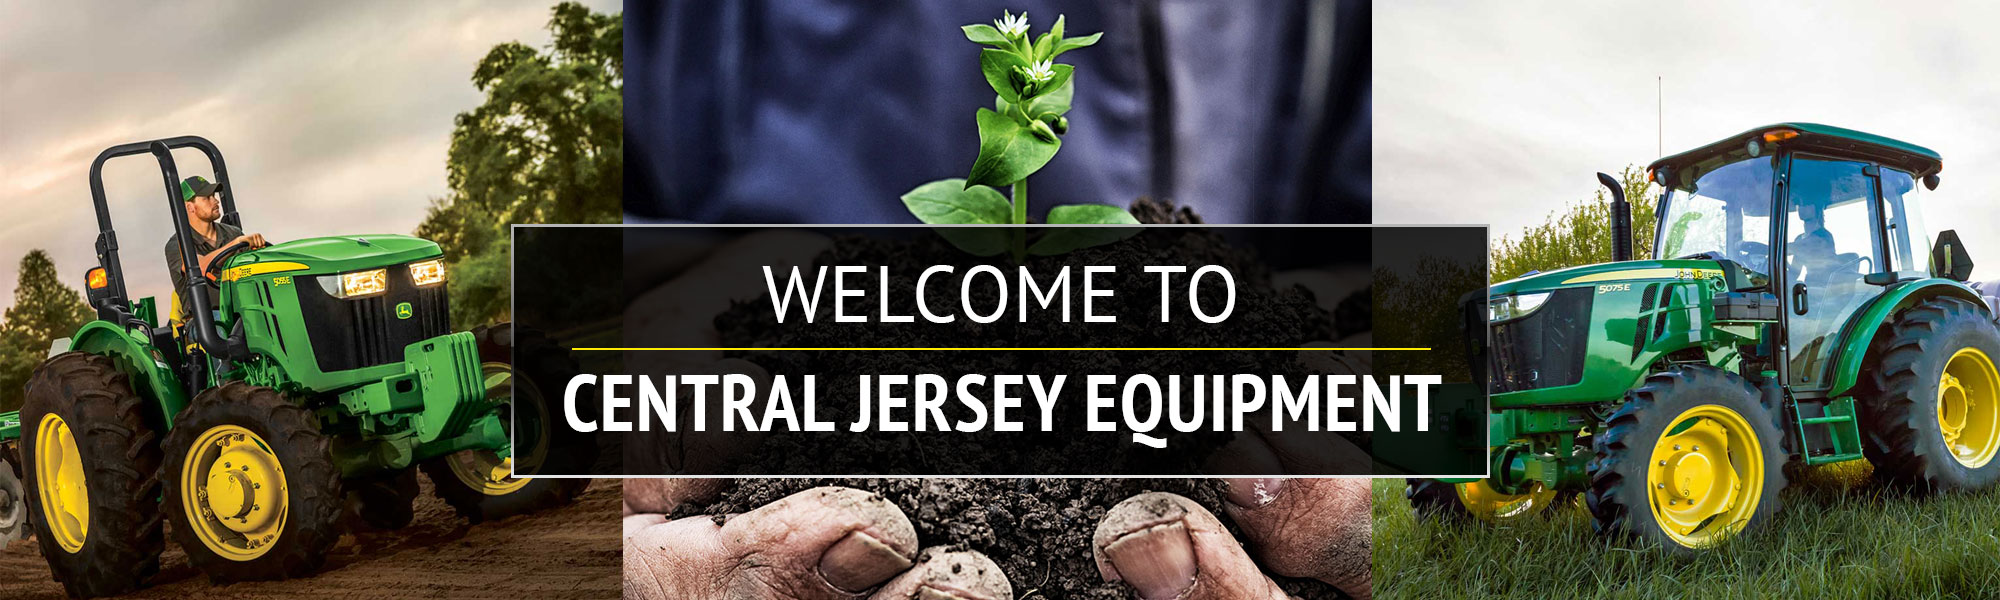 Welcome to Central Jersey Equipment - Your local John Deere, Stihl and Honda equipment Dealer